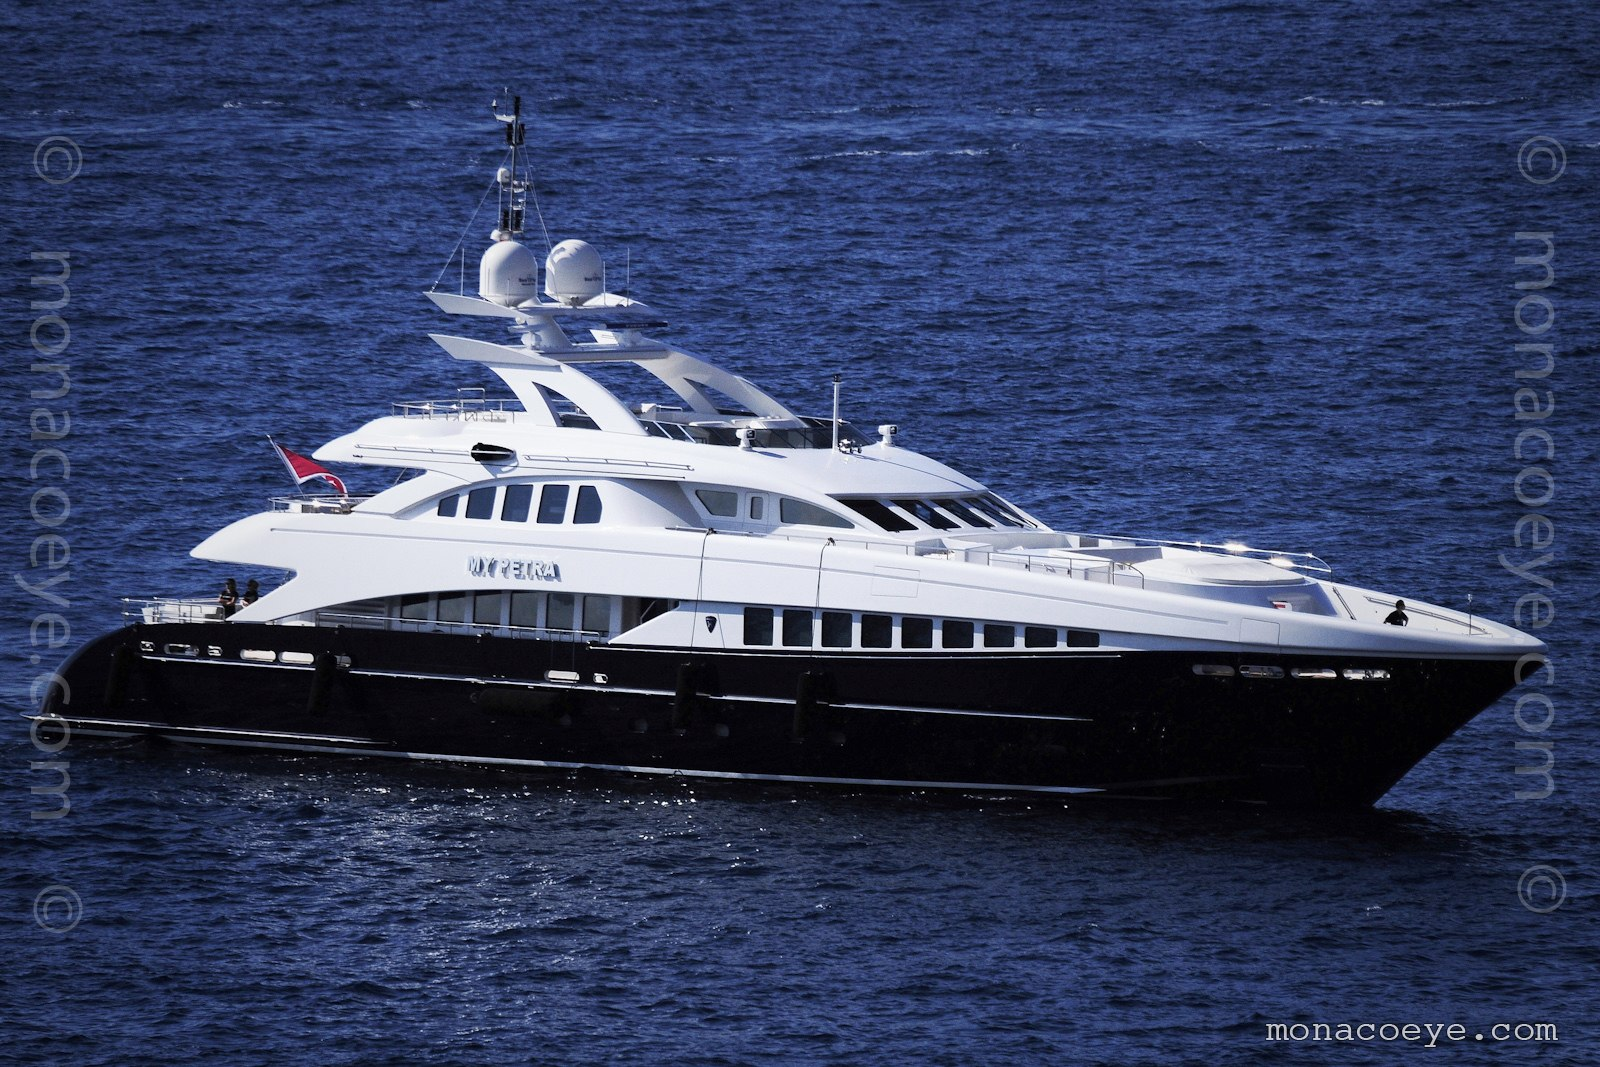 My Petra, new yacht from Heesen. Build number 14844, 2009, 44 metres